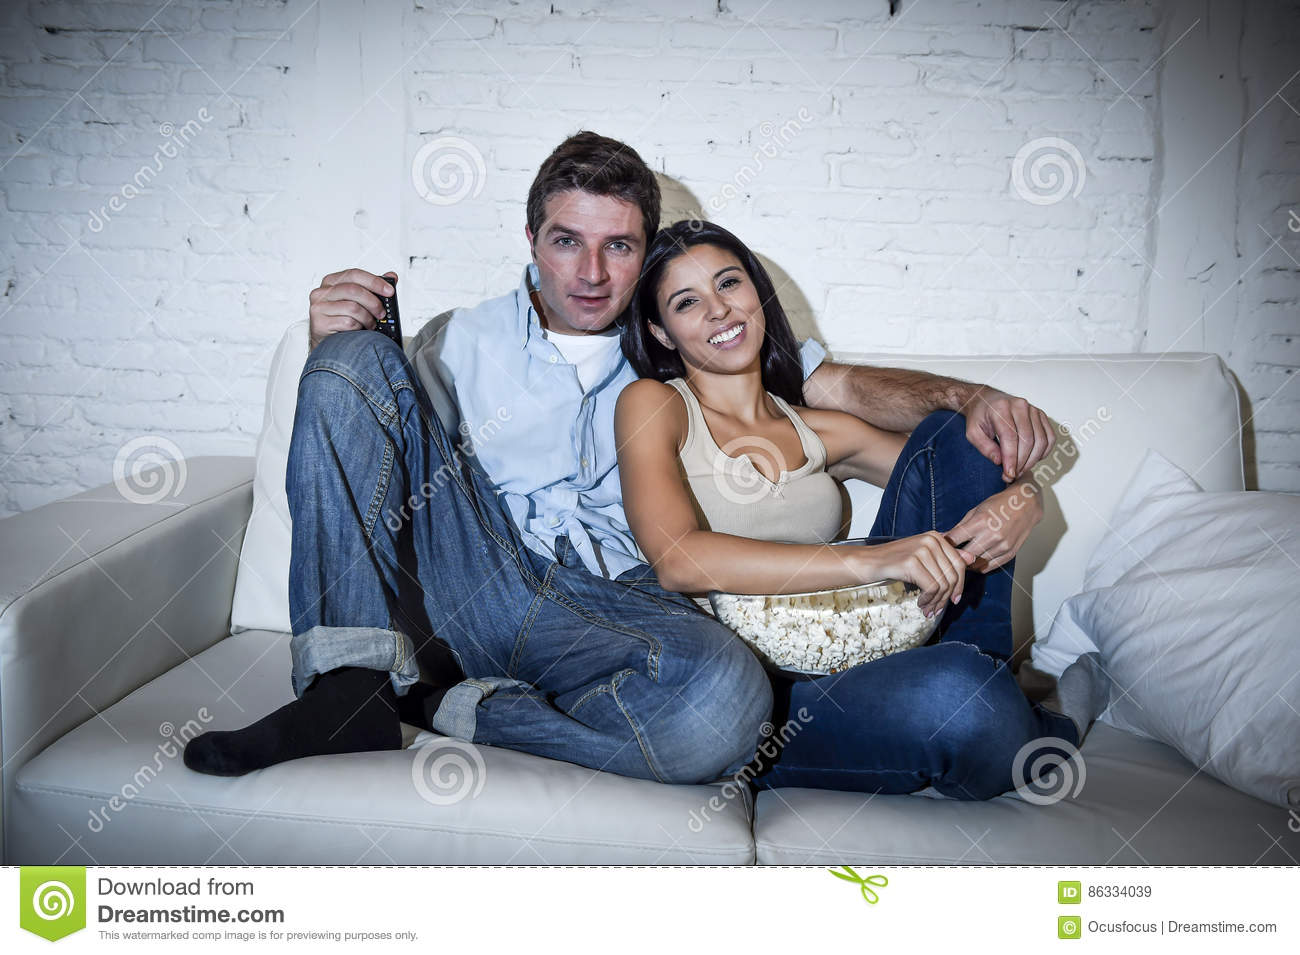 Happy attractive couple having fun at home enjoying watching television relaxed